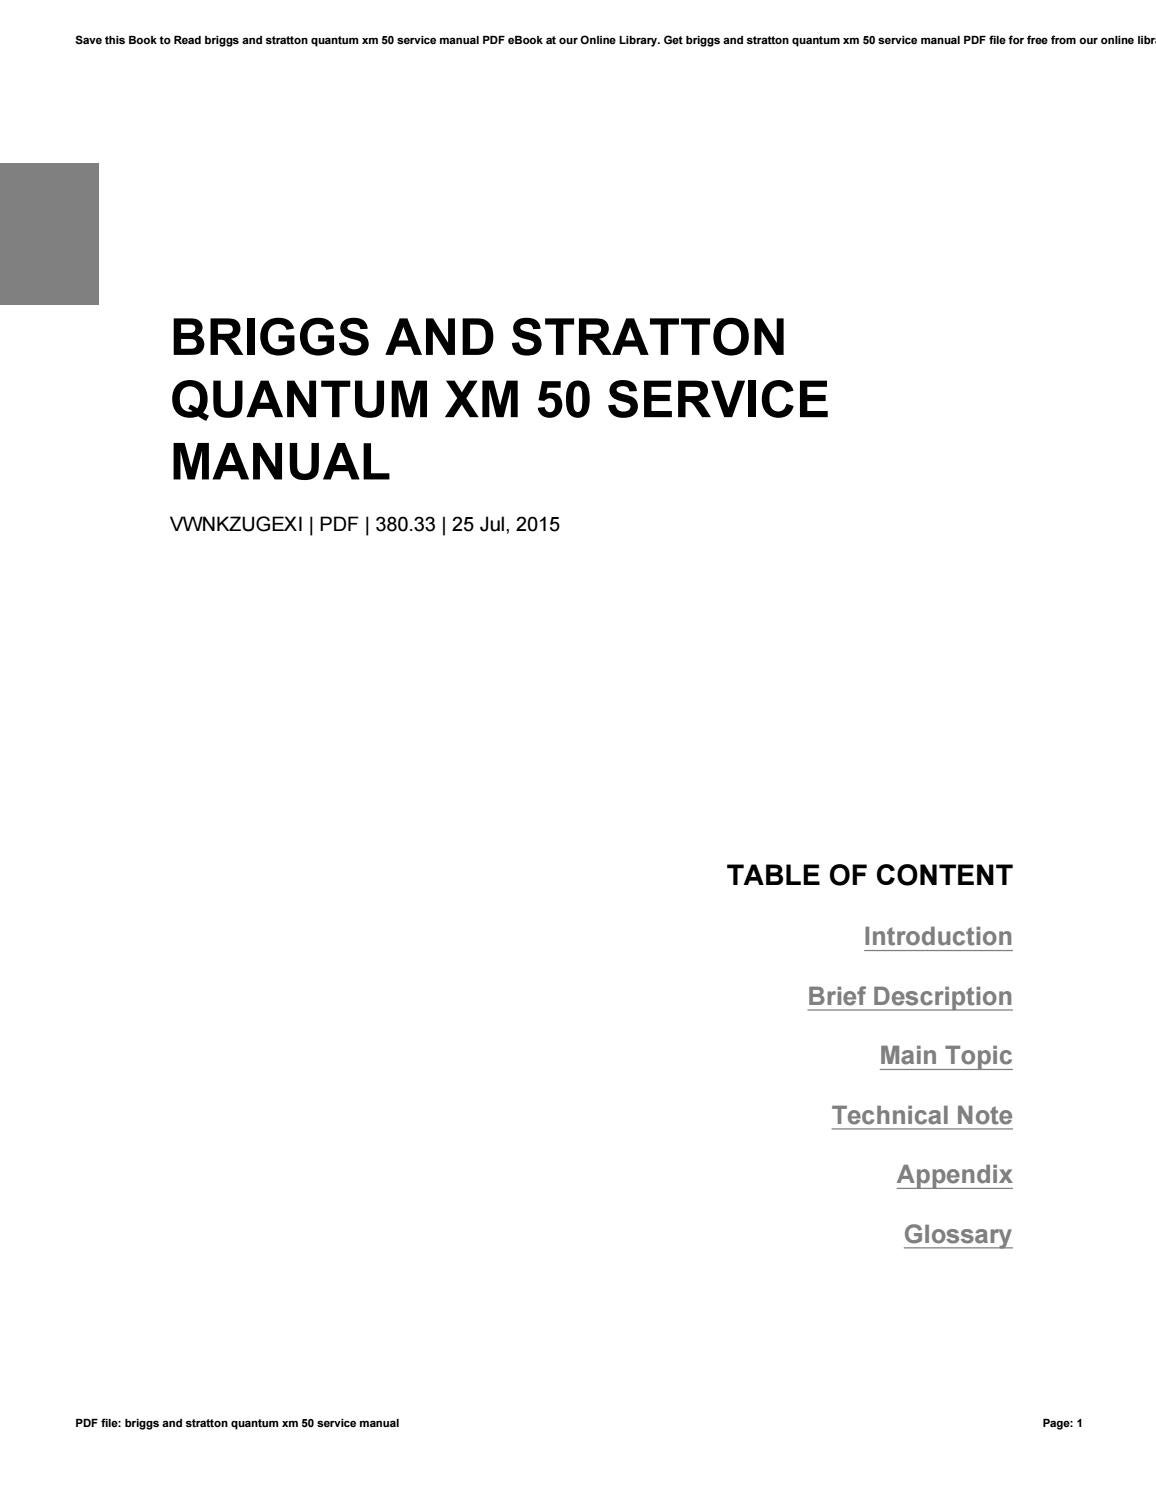 Briggs And Stratton Quantum Xm 50 Service Manual By Manual Guide